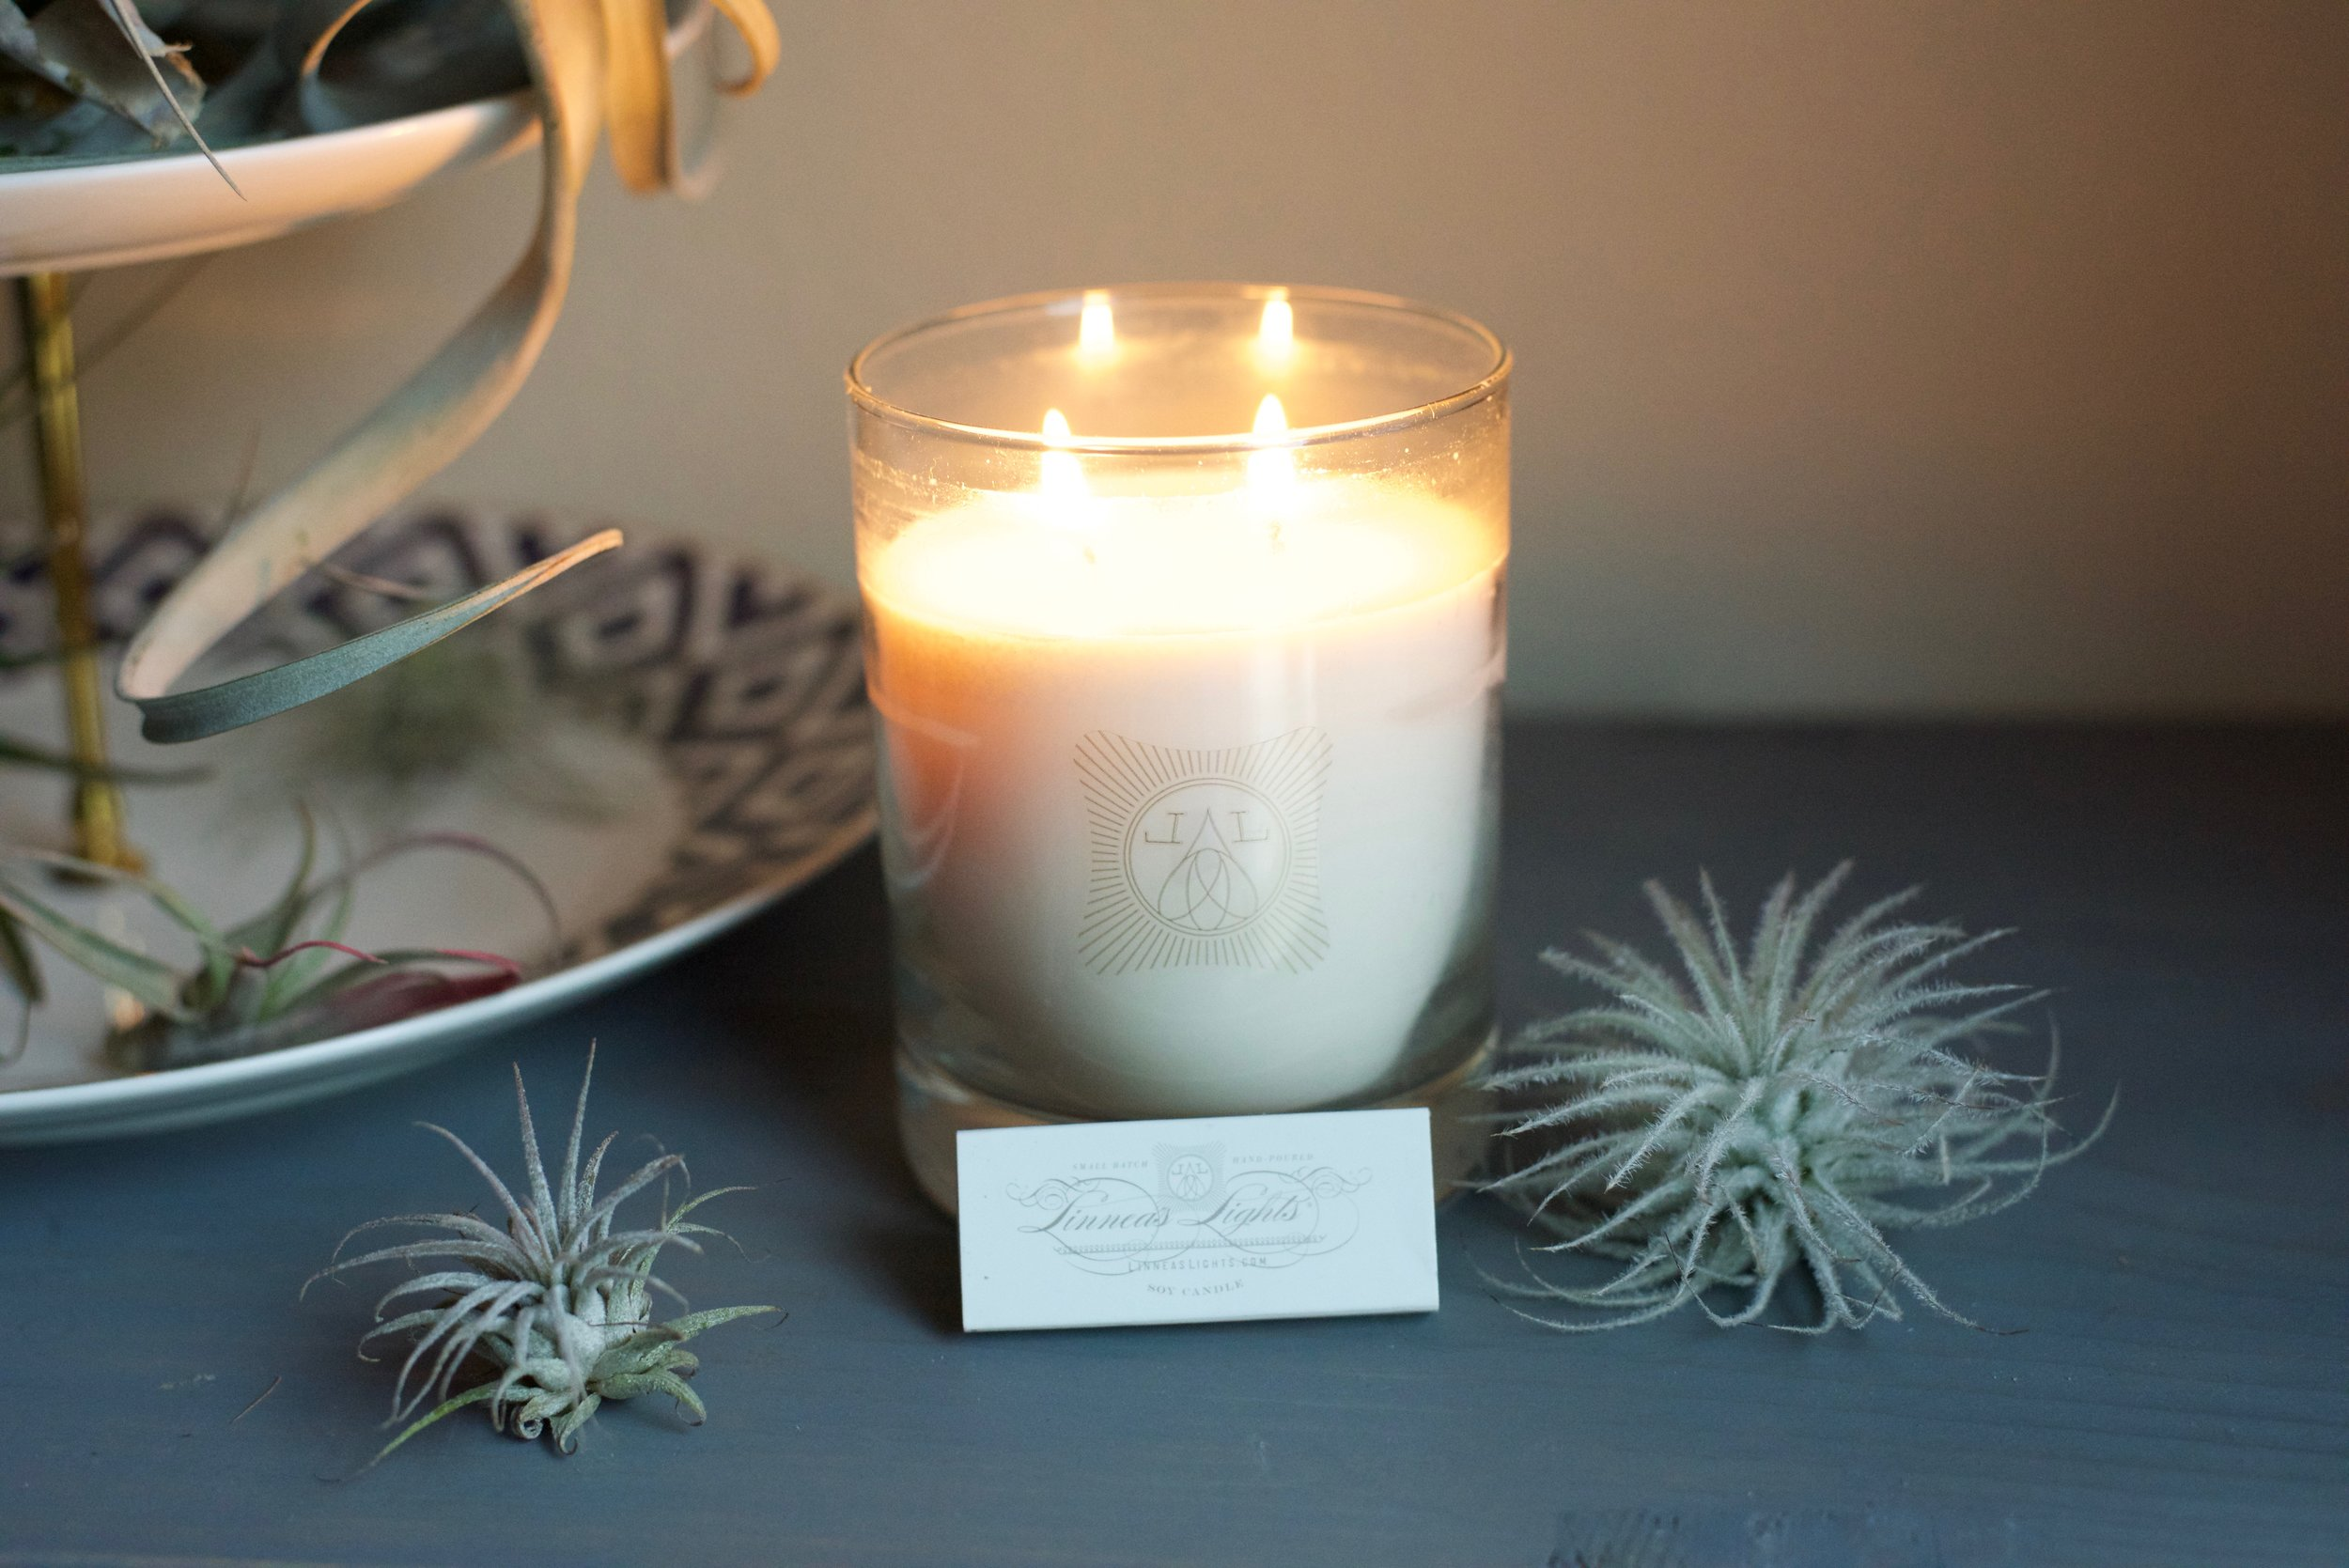 Linnea Lavender Soy Candle Review